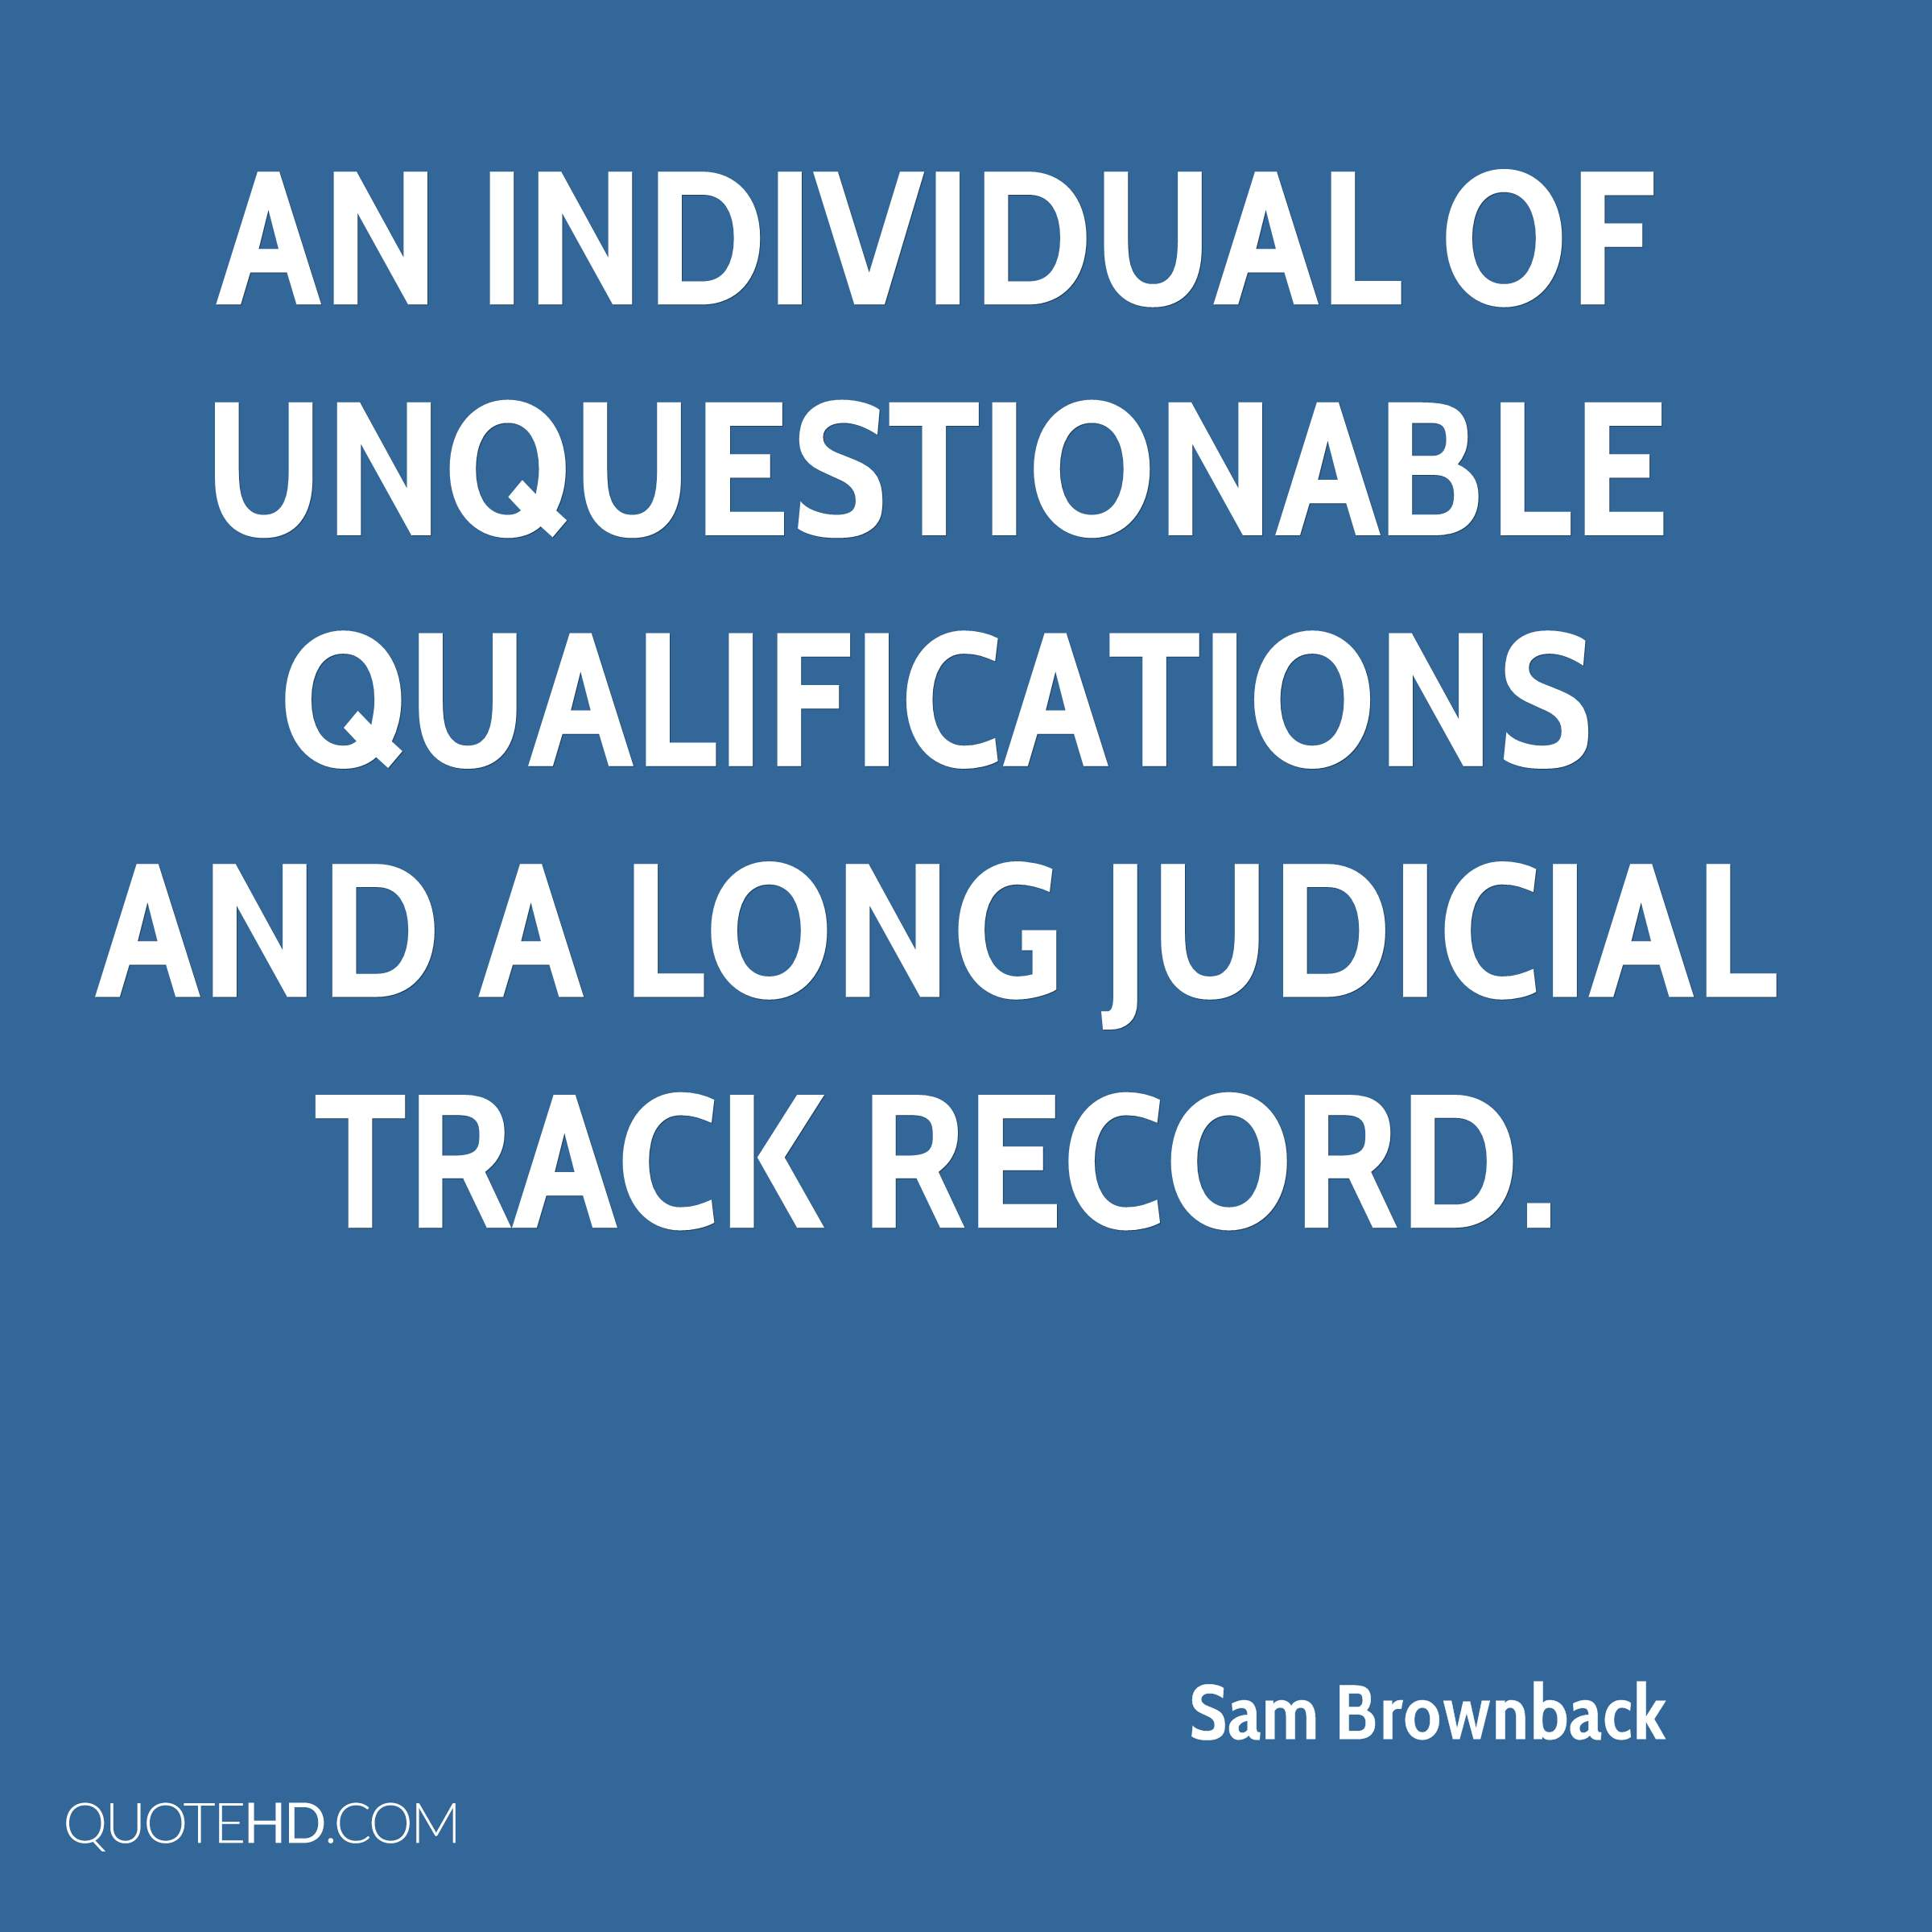 an individual of unquestionable qualifications and a long judicial track record.